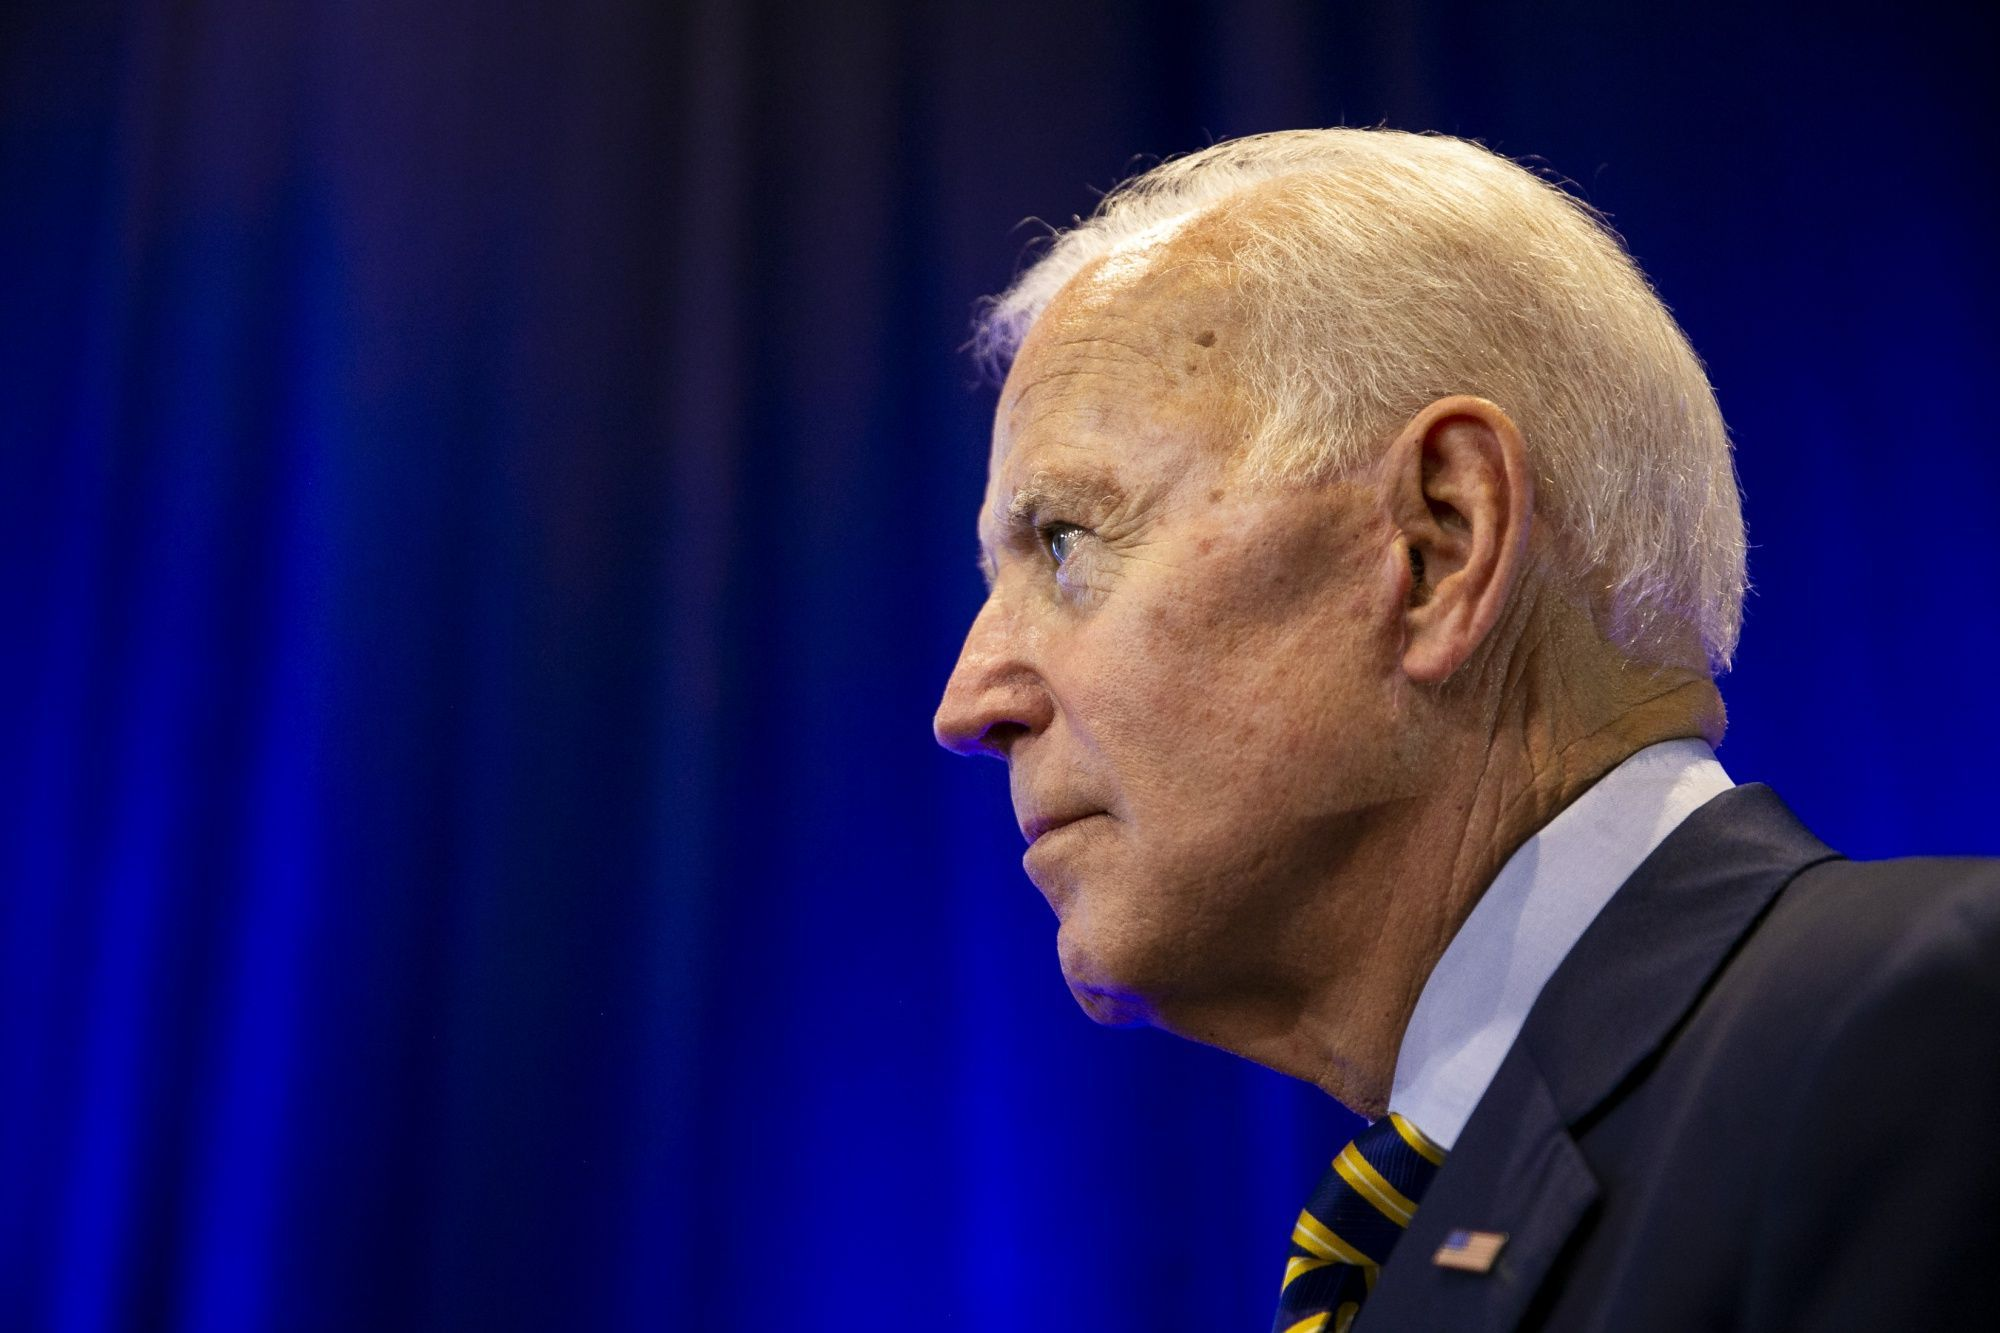 Biden Returns to Campaign Trail with Strong Protection of Obamacare